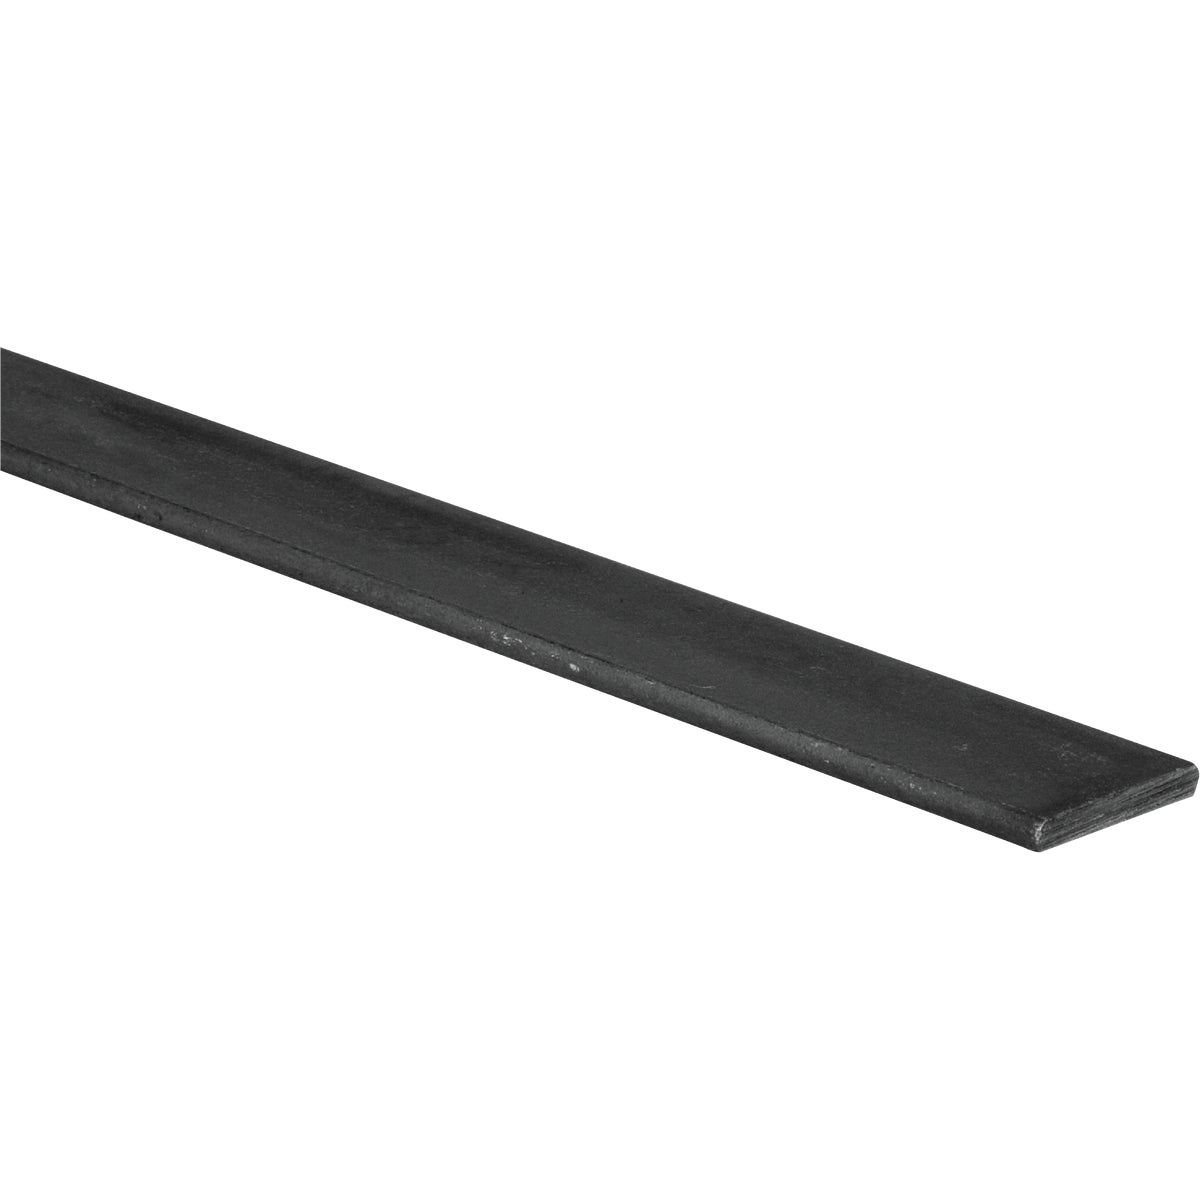 1/8X1X3' HR STL FLAT BAR - N301358 by National Mfg Co